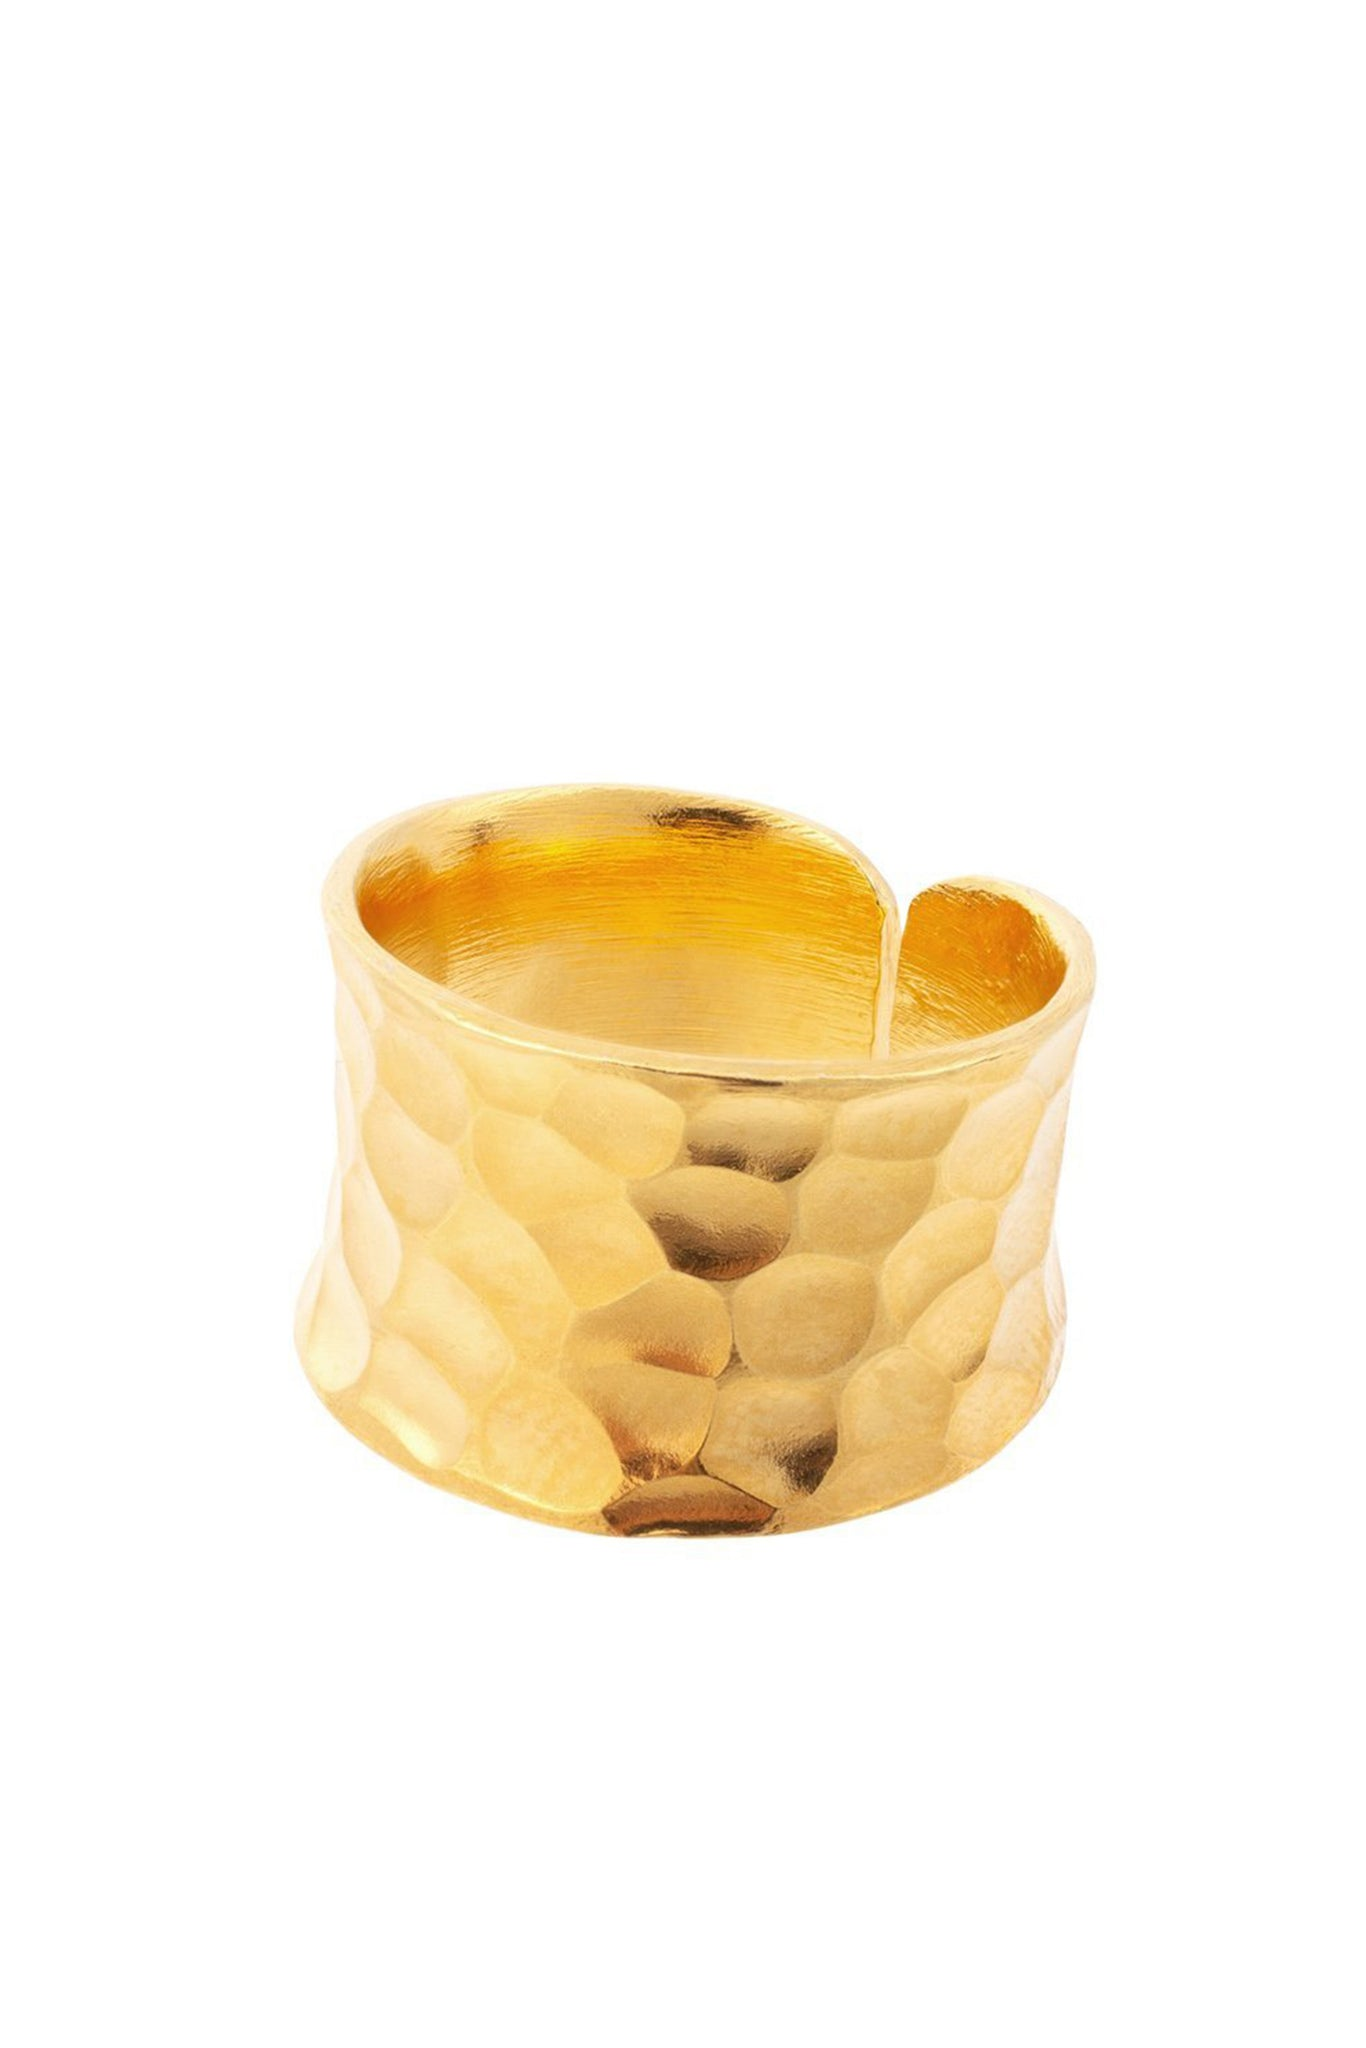 NUDO GOLD SHORT HAMMERED RING (adjustable)